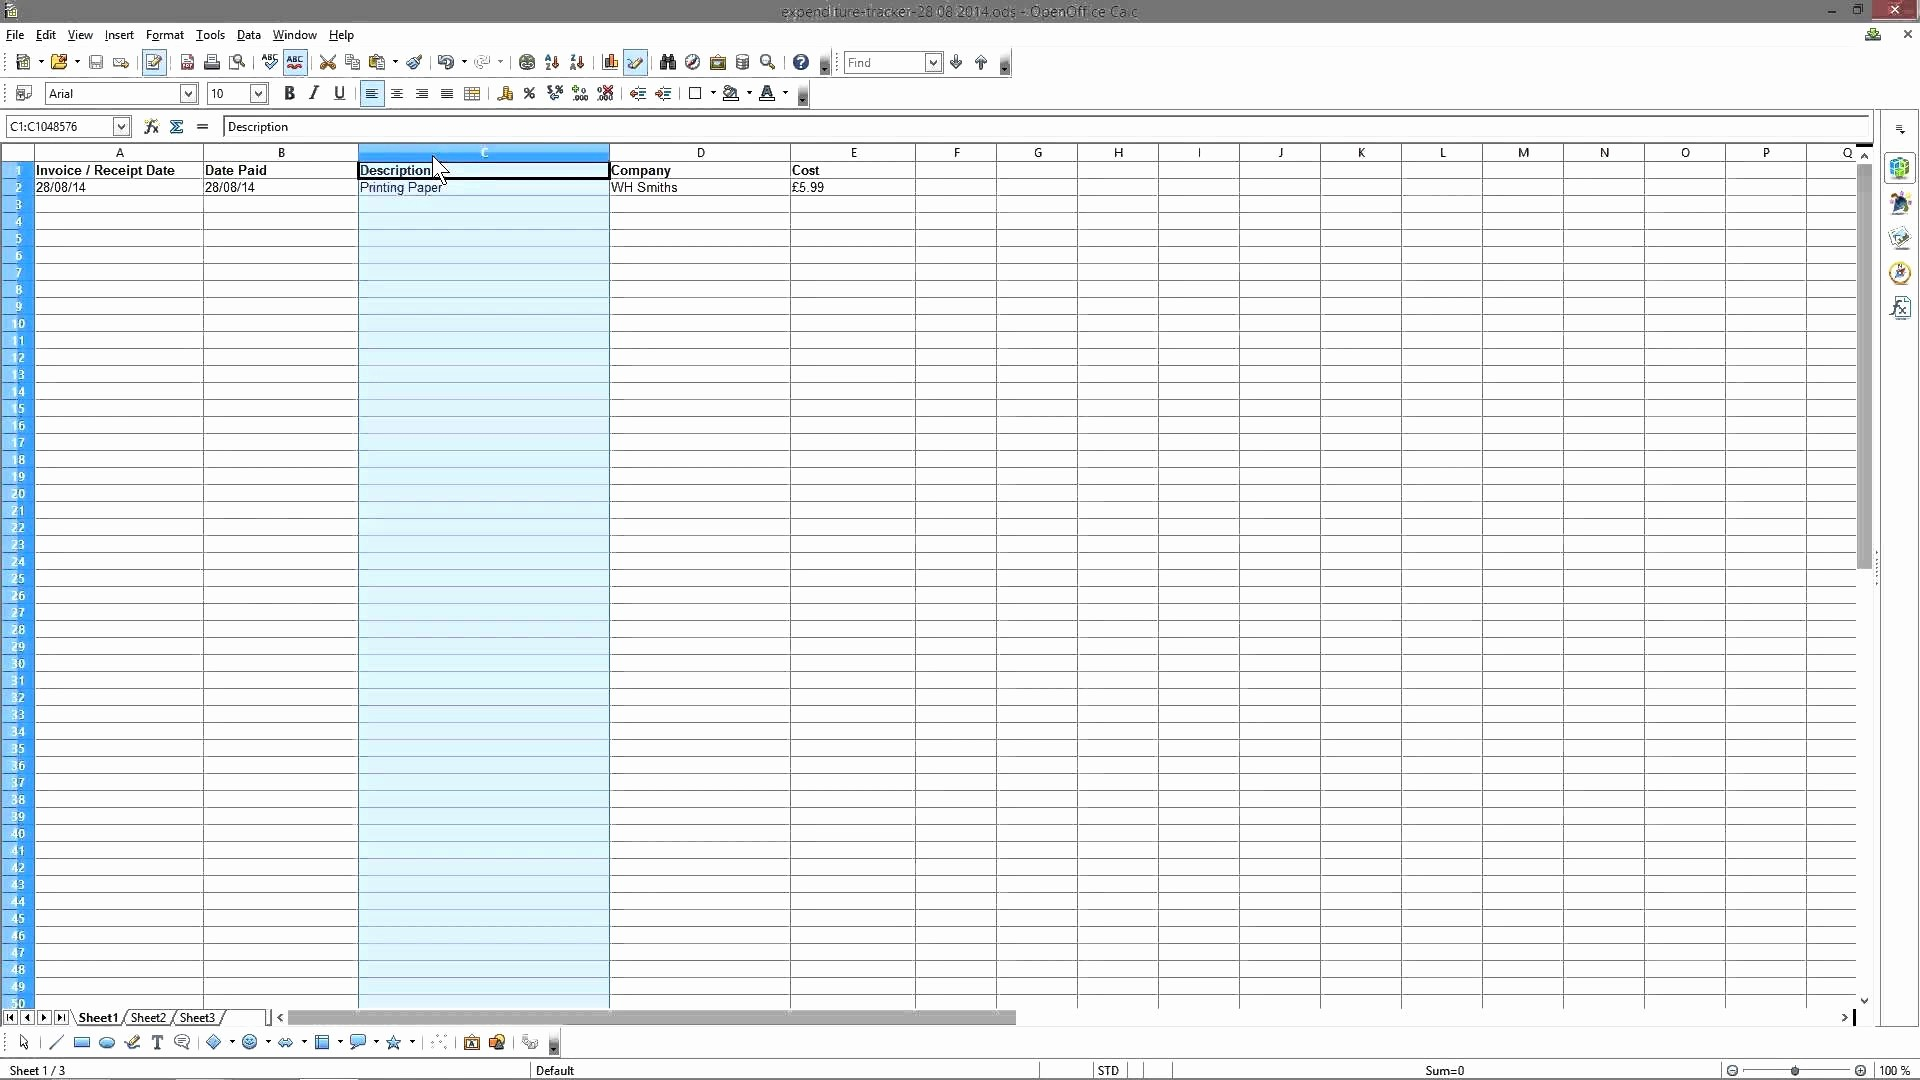 Excel Template For Small Business Bookkeeping Spreadsheet Examples Inside Business Bookkeeping Spreadsheet Template